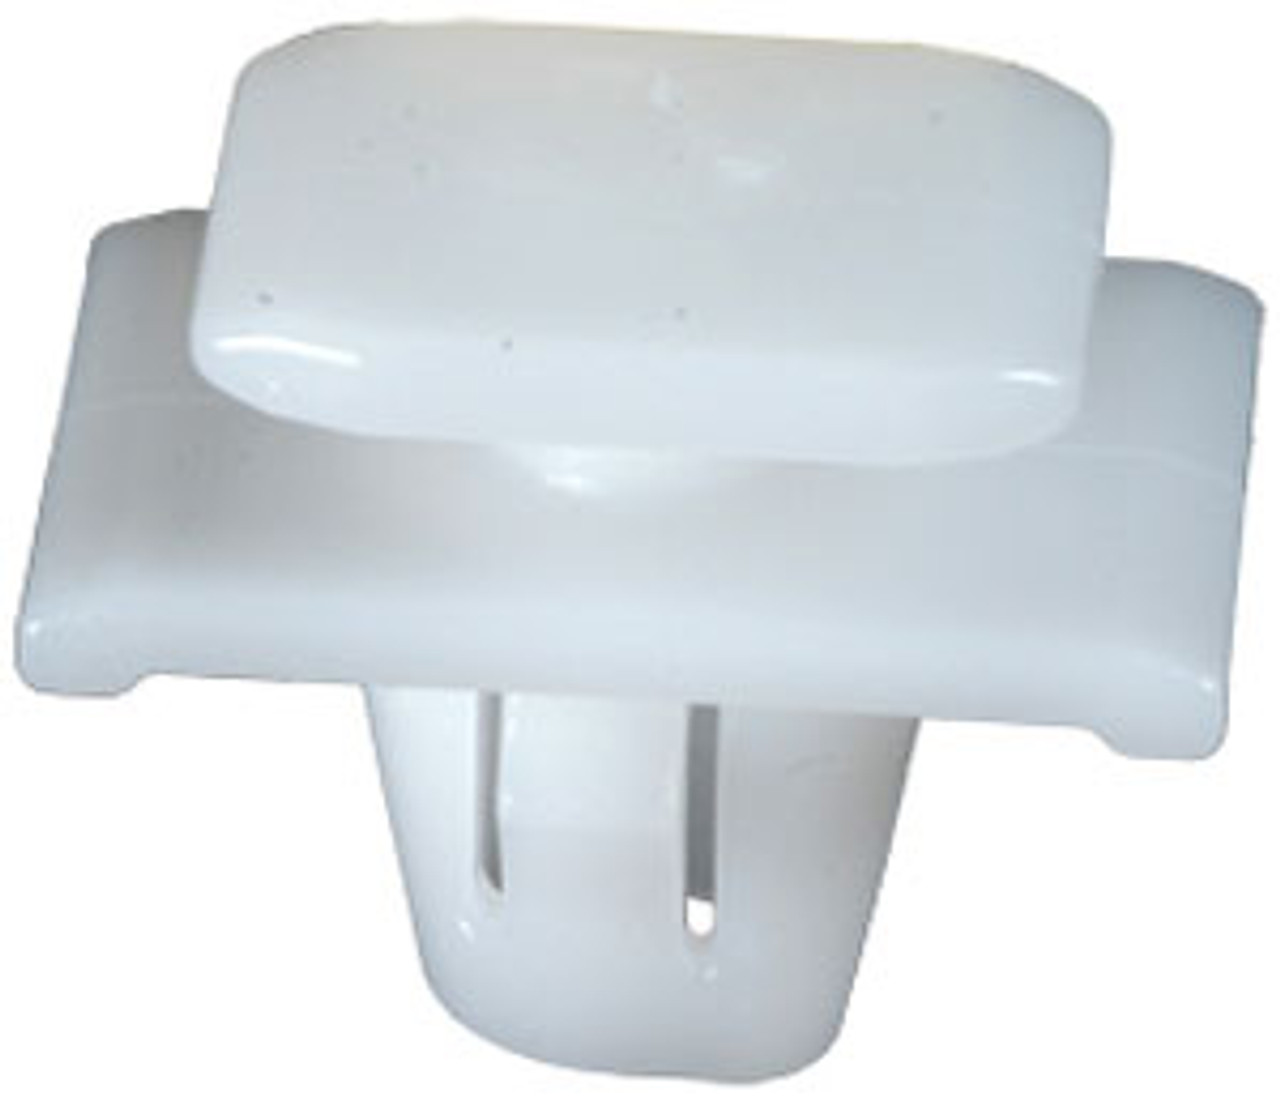 Front & Rear Door Exterior Trim Moulding Clip Top Head Size: 12mm x 15mm Bottom Head Size: 14mm x 20mm Stem Length: 9mm Acura RDX 2009 -07 OEM# 75315-STK-A01 White Nylon 15 Per Box Click Next Image For Clip Detail